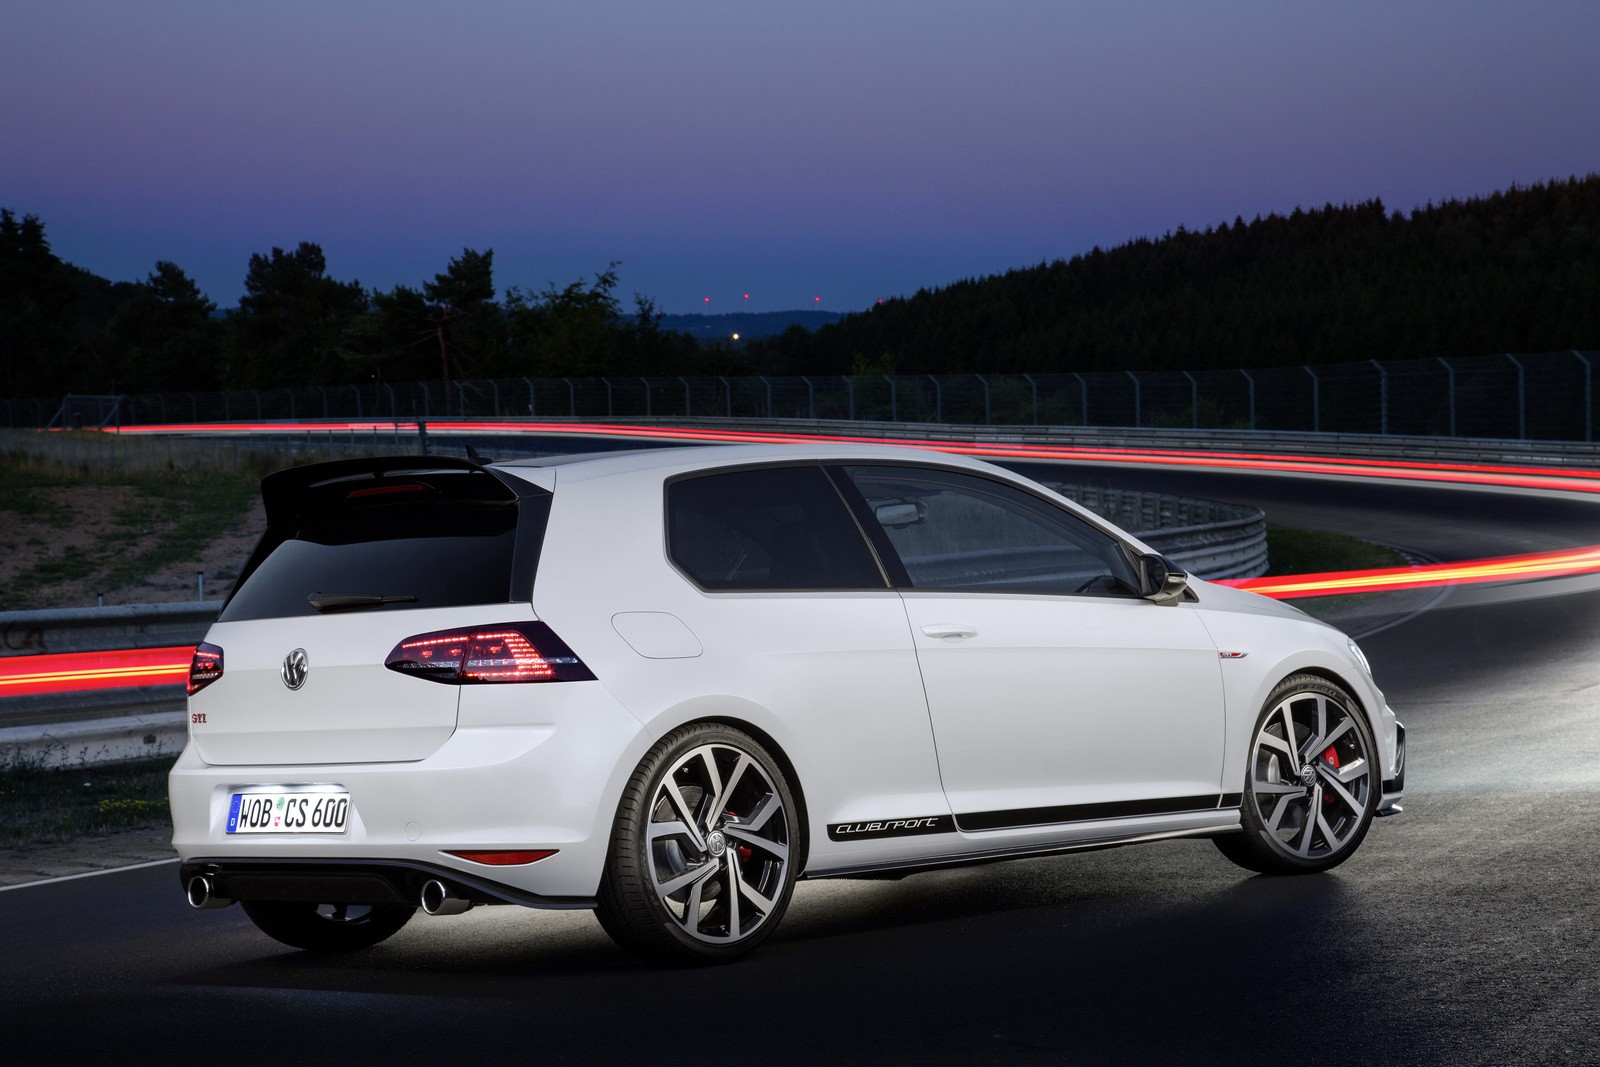 new volkswagen golf gti clubsport costs 36 450 too much money for a golf autoevolution. Black Bedroom Furniture Sets. Home Design Ideas